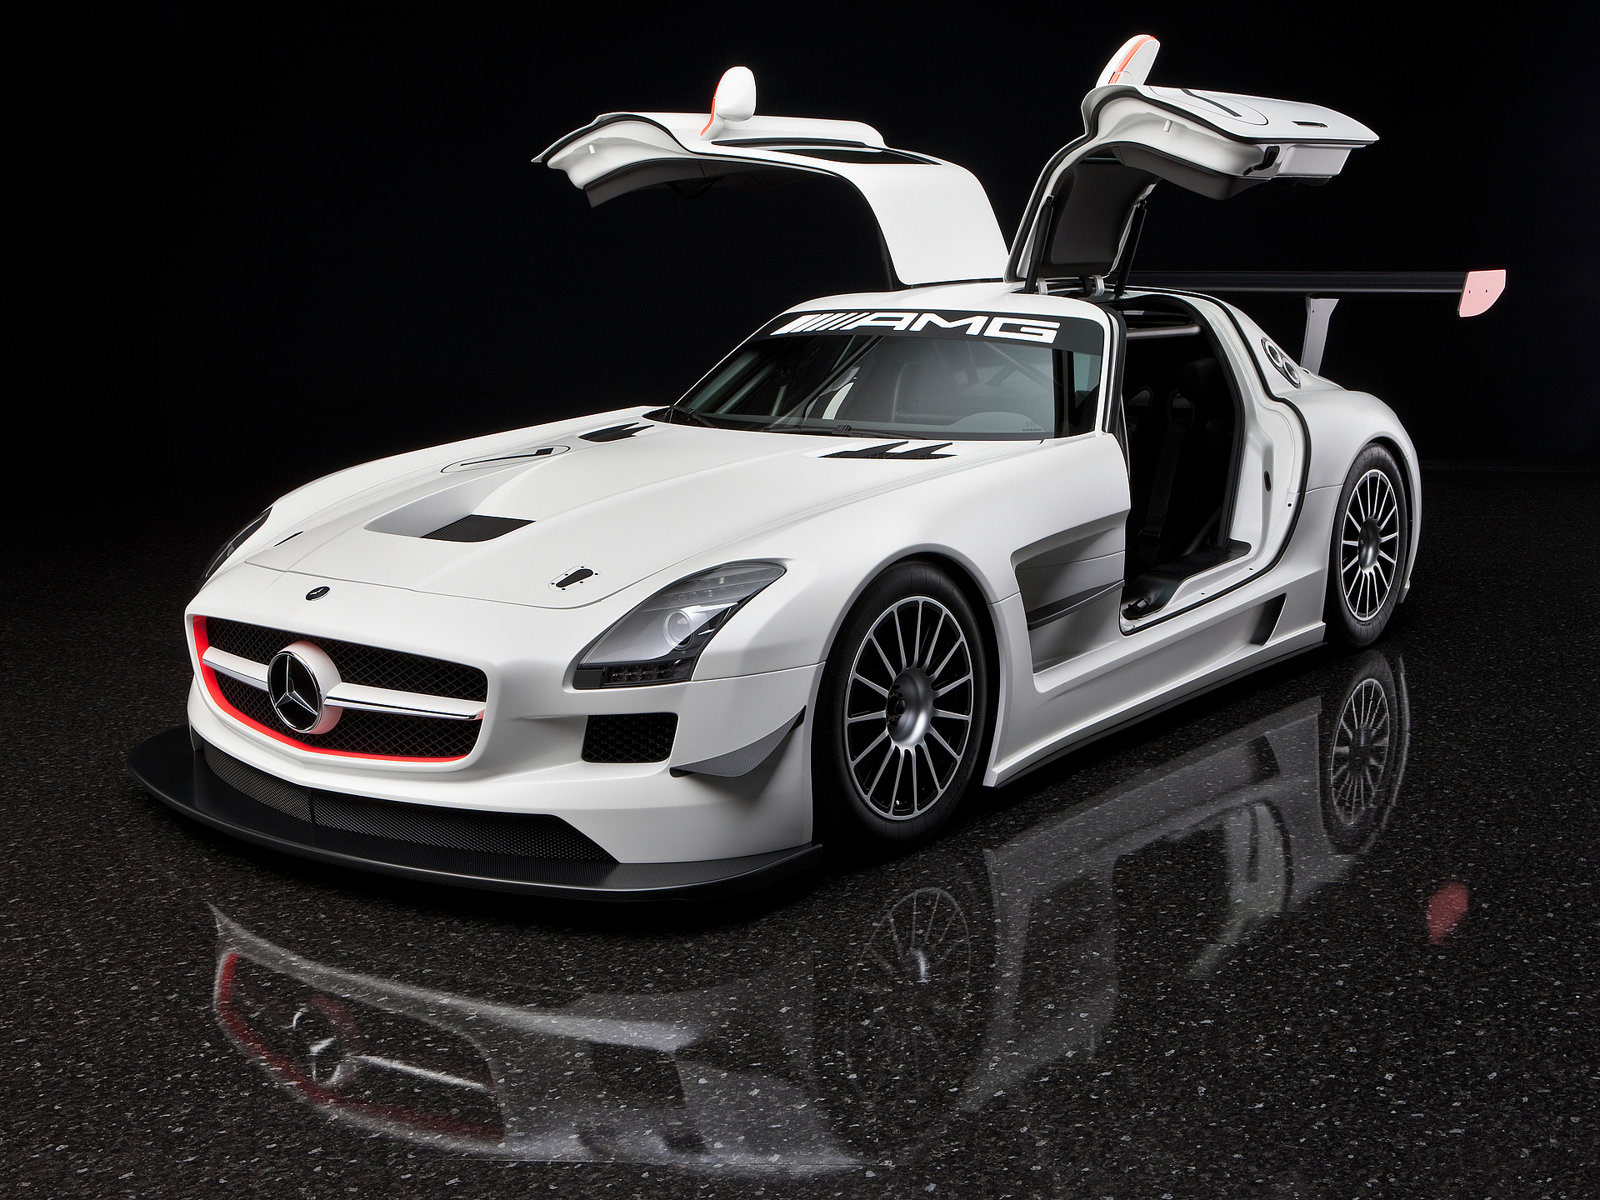 Mercedes Benz Sls Amg Review >> 2011 MERCEDES-BENZ SLS AMG GT3 car wallpaper